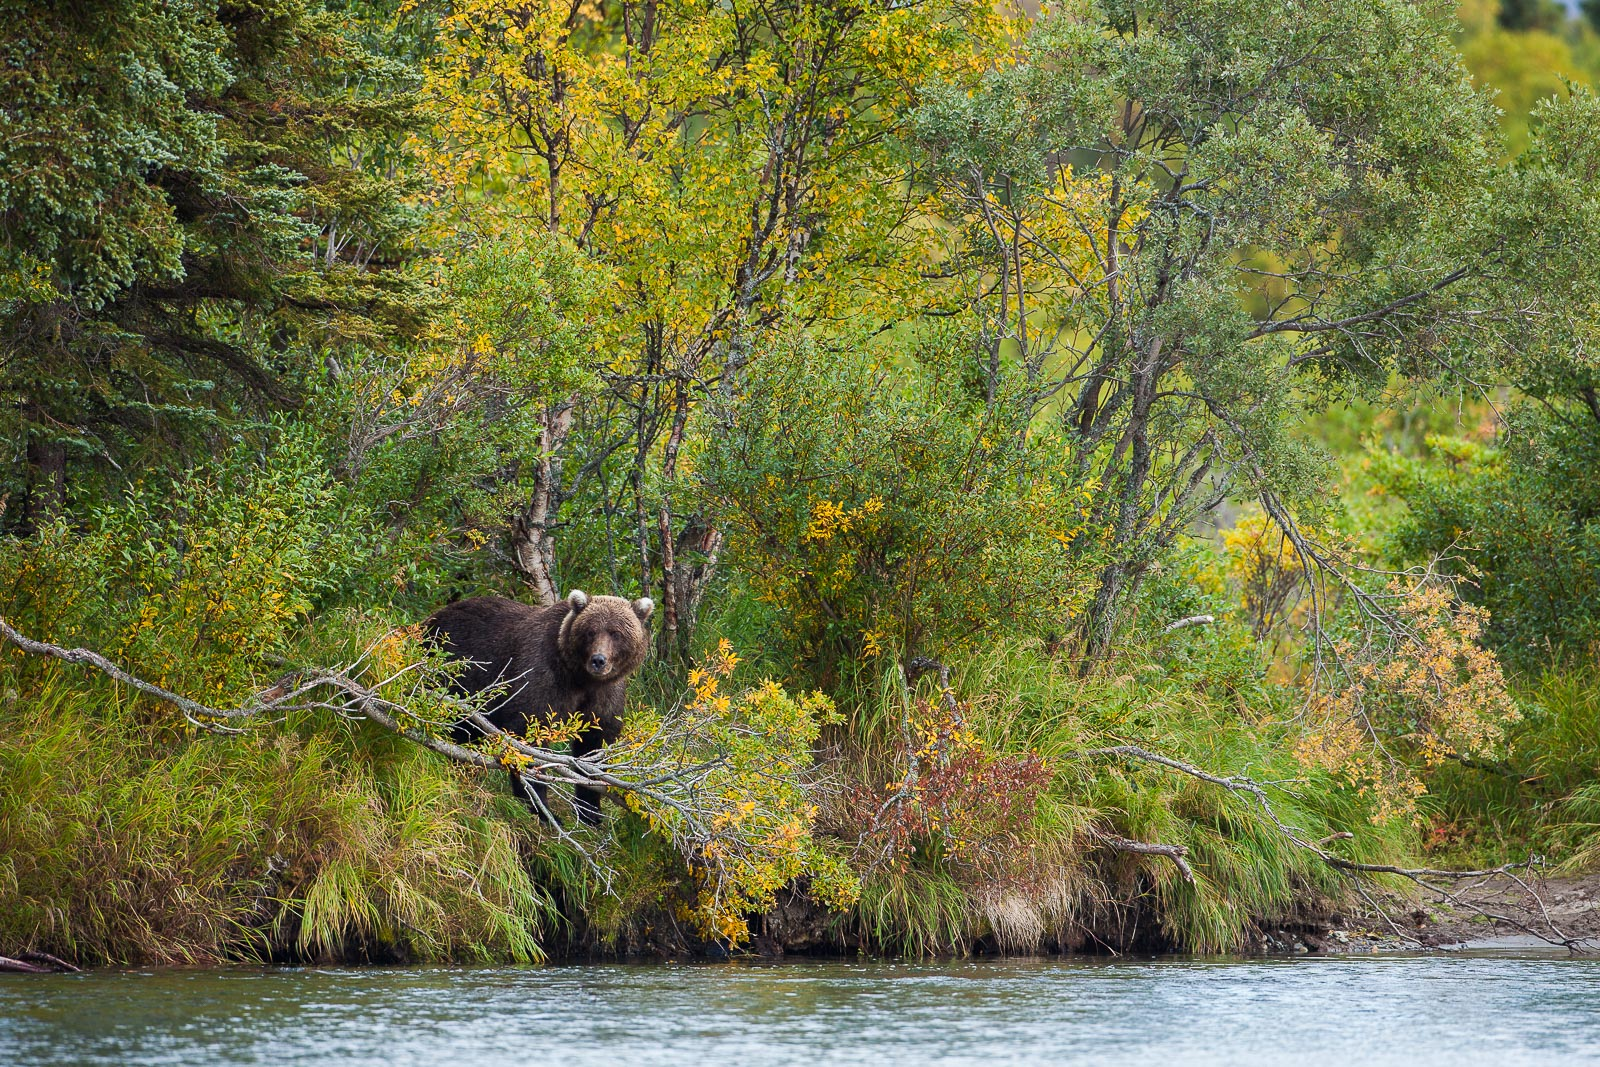 Hideaway,Fall,Grizzly,Wildlife,river,water,katmai national park,trees,green,horizontal, bear, photo